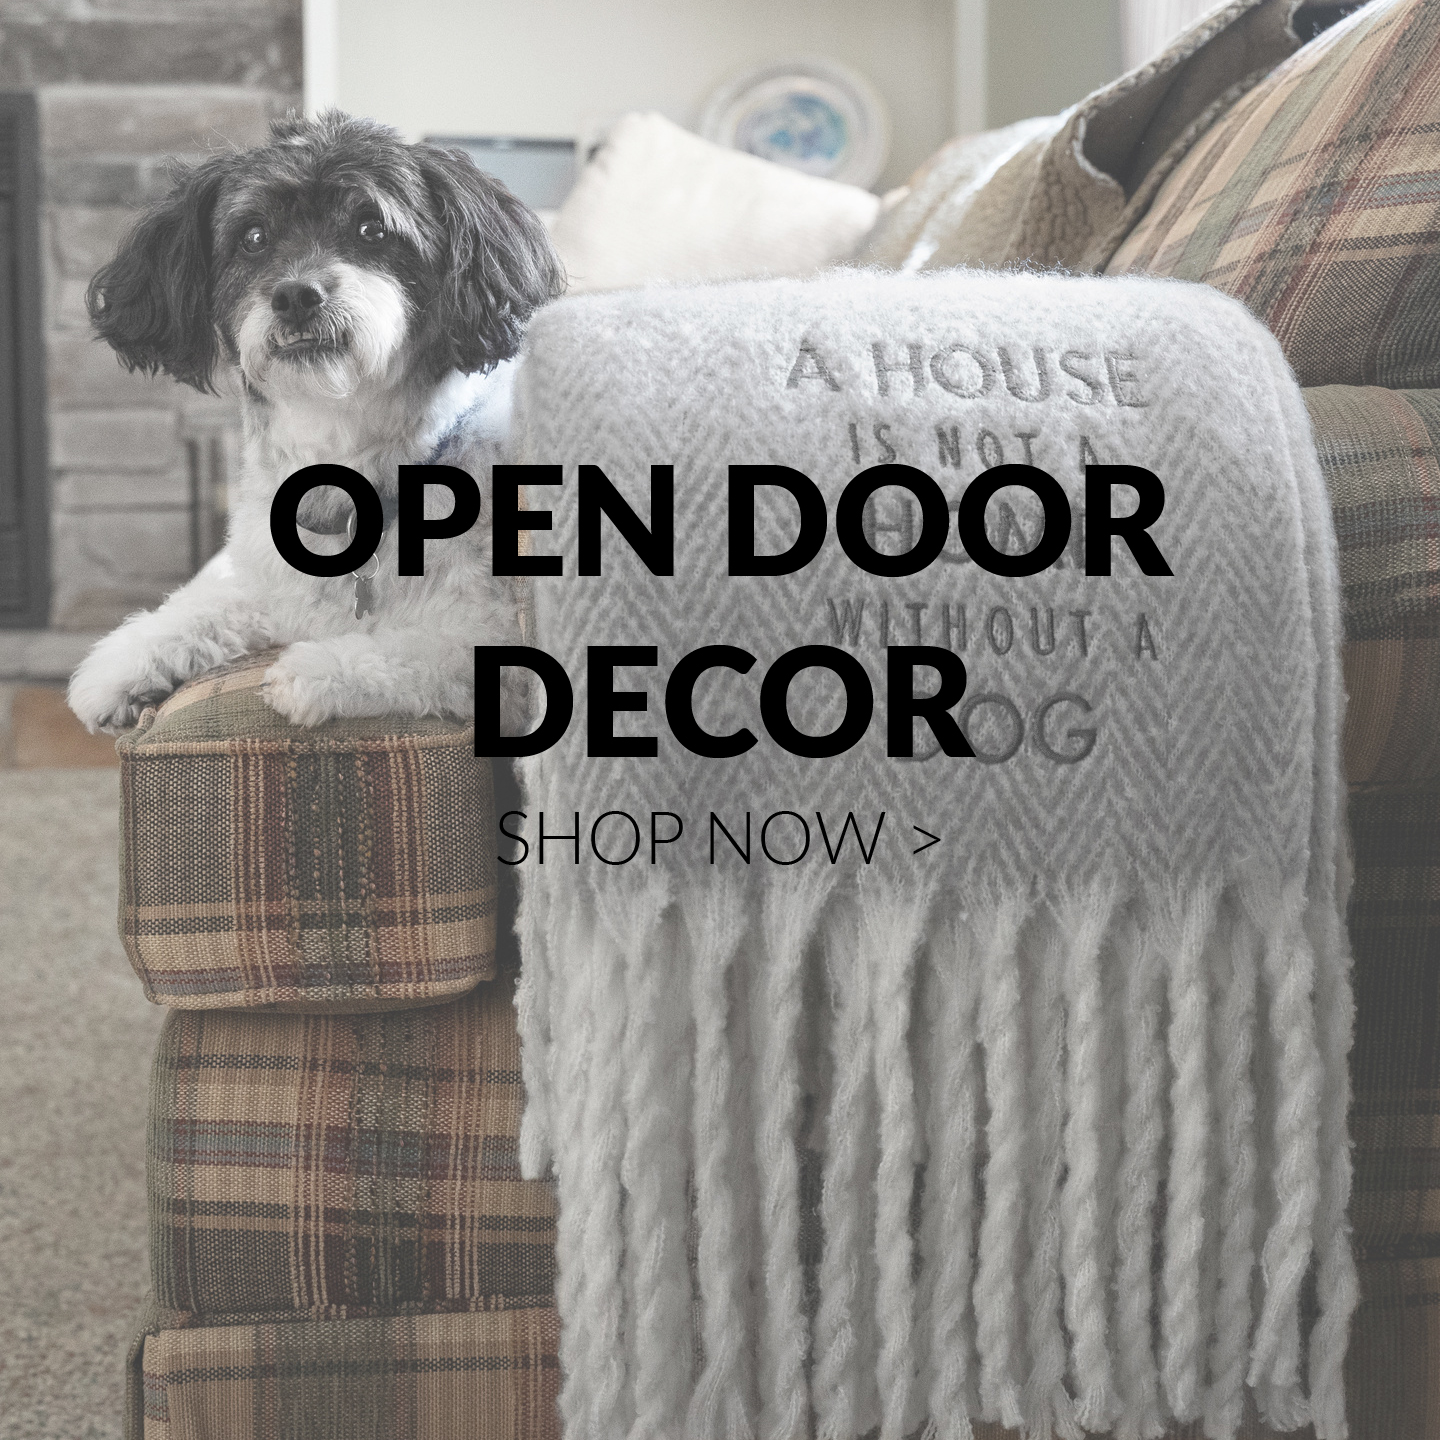 Open Door Decor